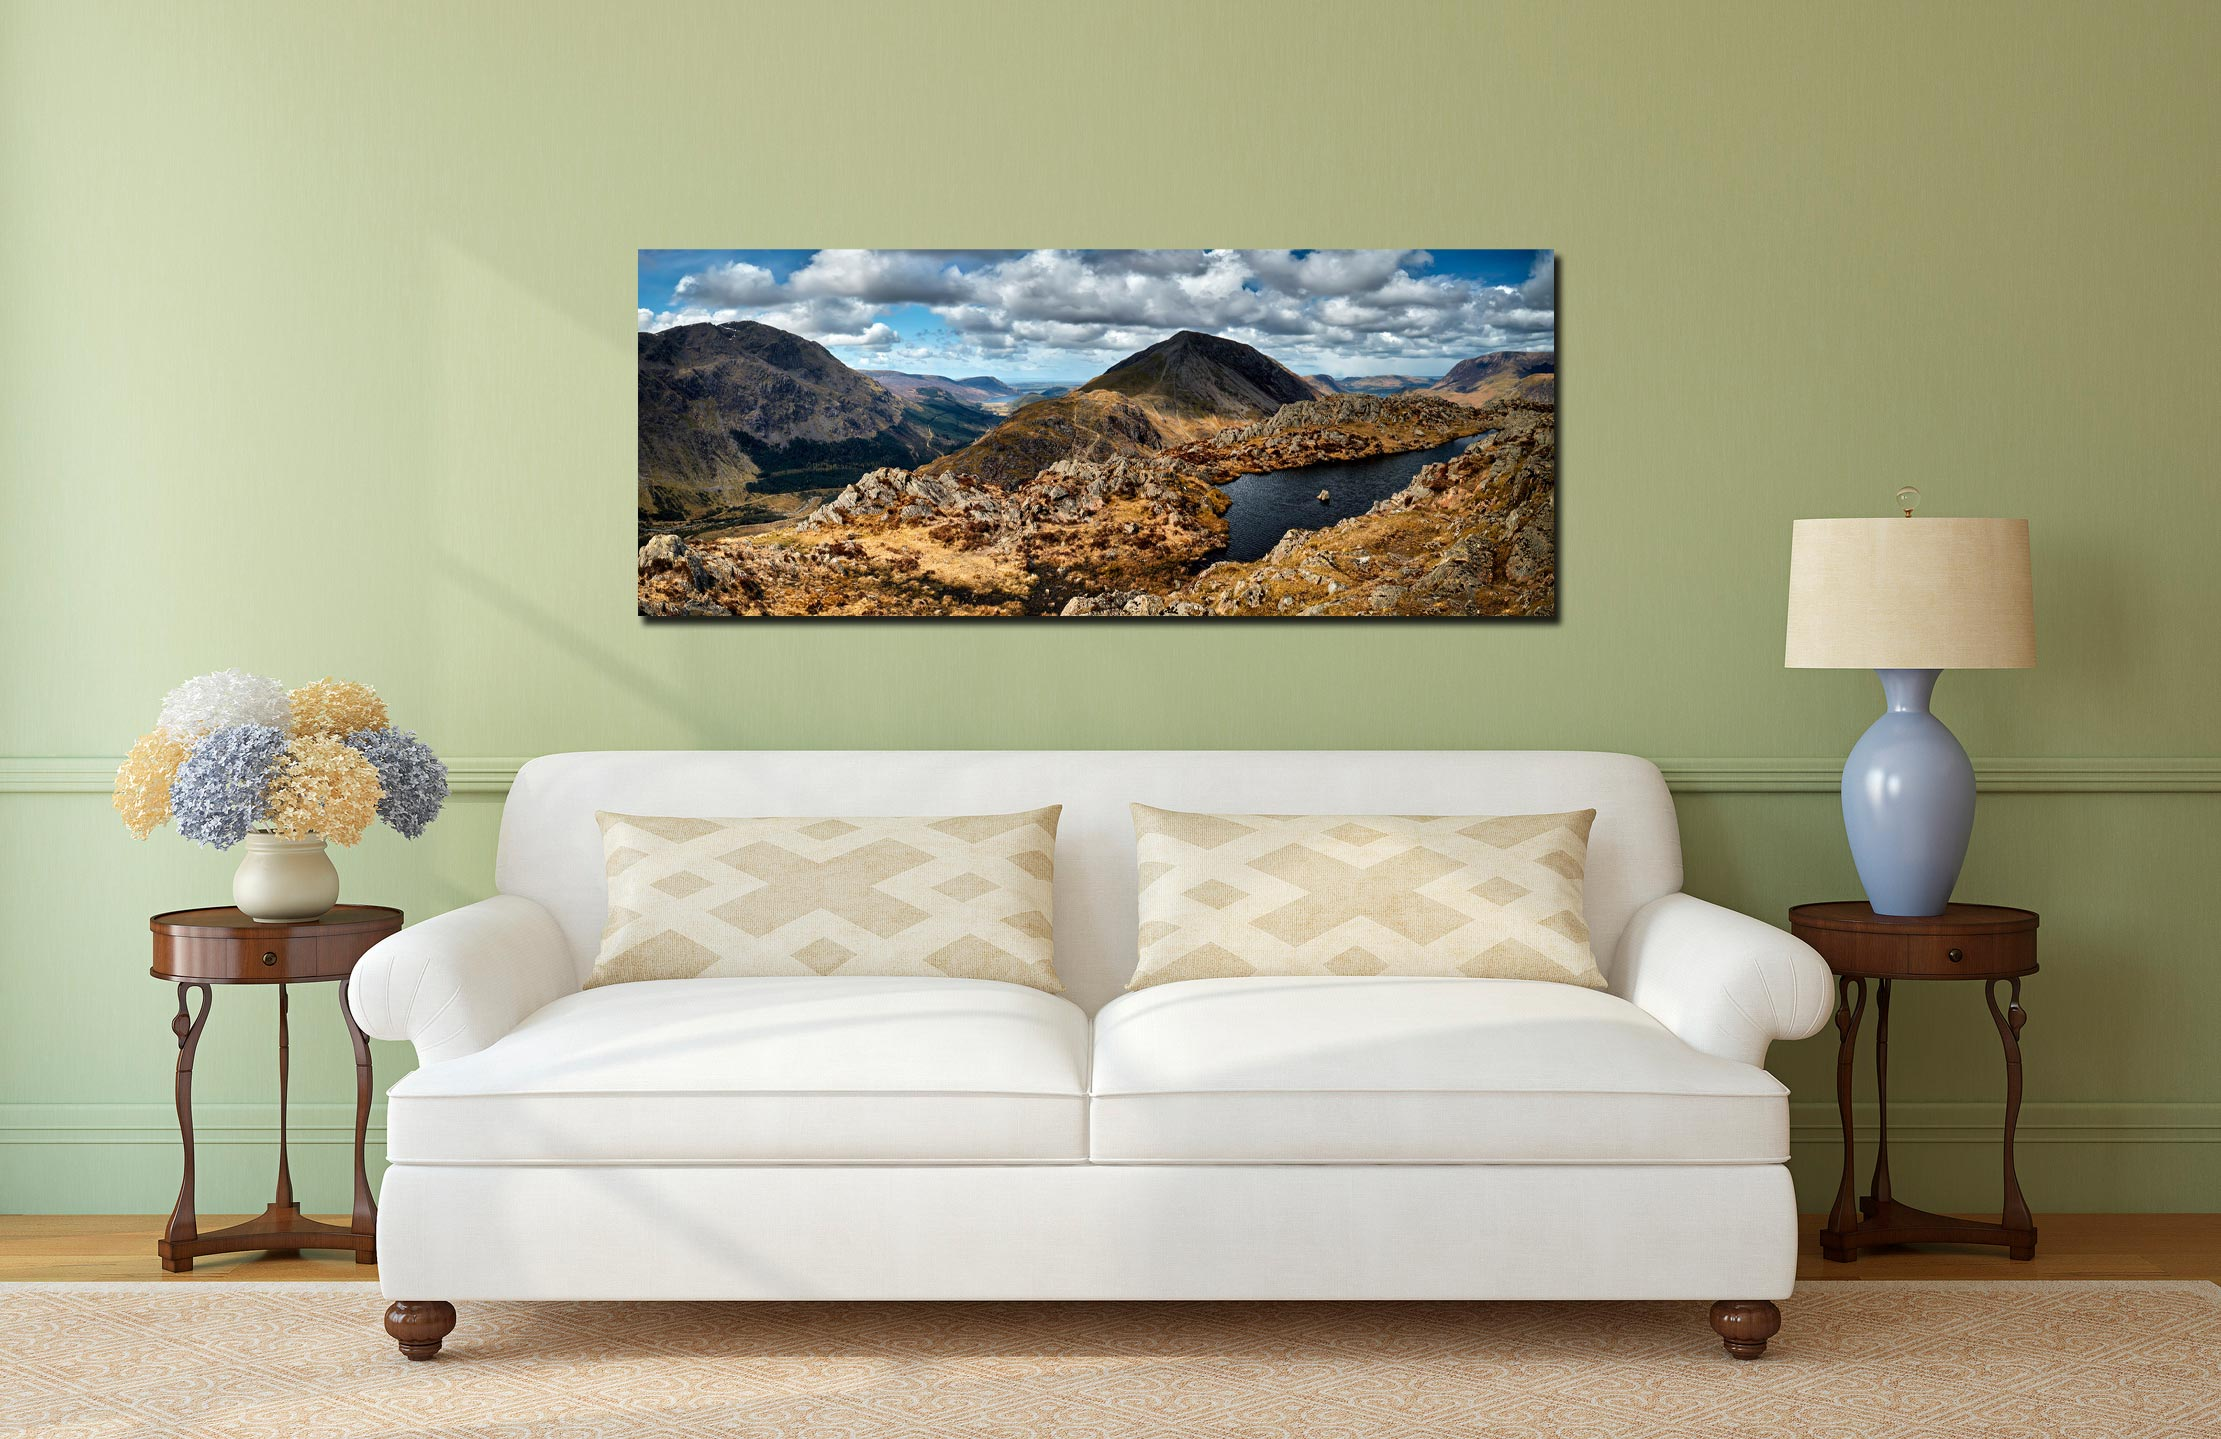 View from Hay Stacks near Scarth Gap. A lovely Spring afternoon with only the odd shower in the distance. Far left is Pillar, Ennerdale Valley, Seat, High Crag (center), Crummock Water then Grasmoor in the distance on the right - Print Aluminium Backing With Acrylic Glazing on Wall